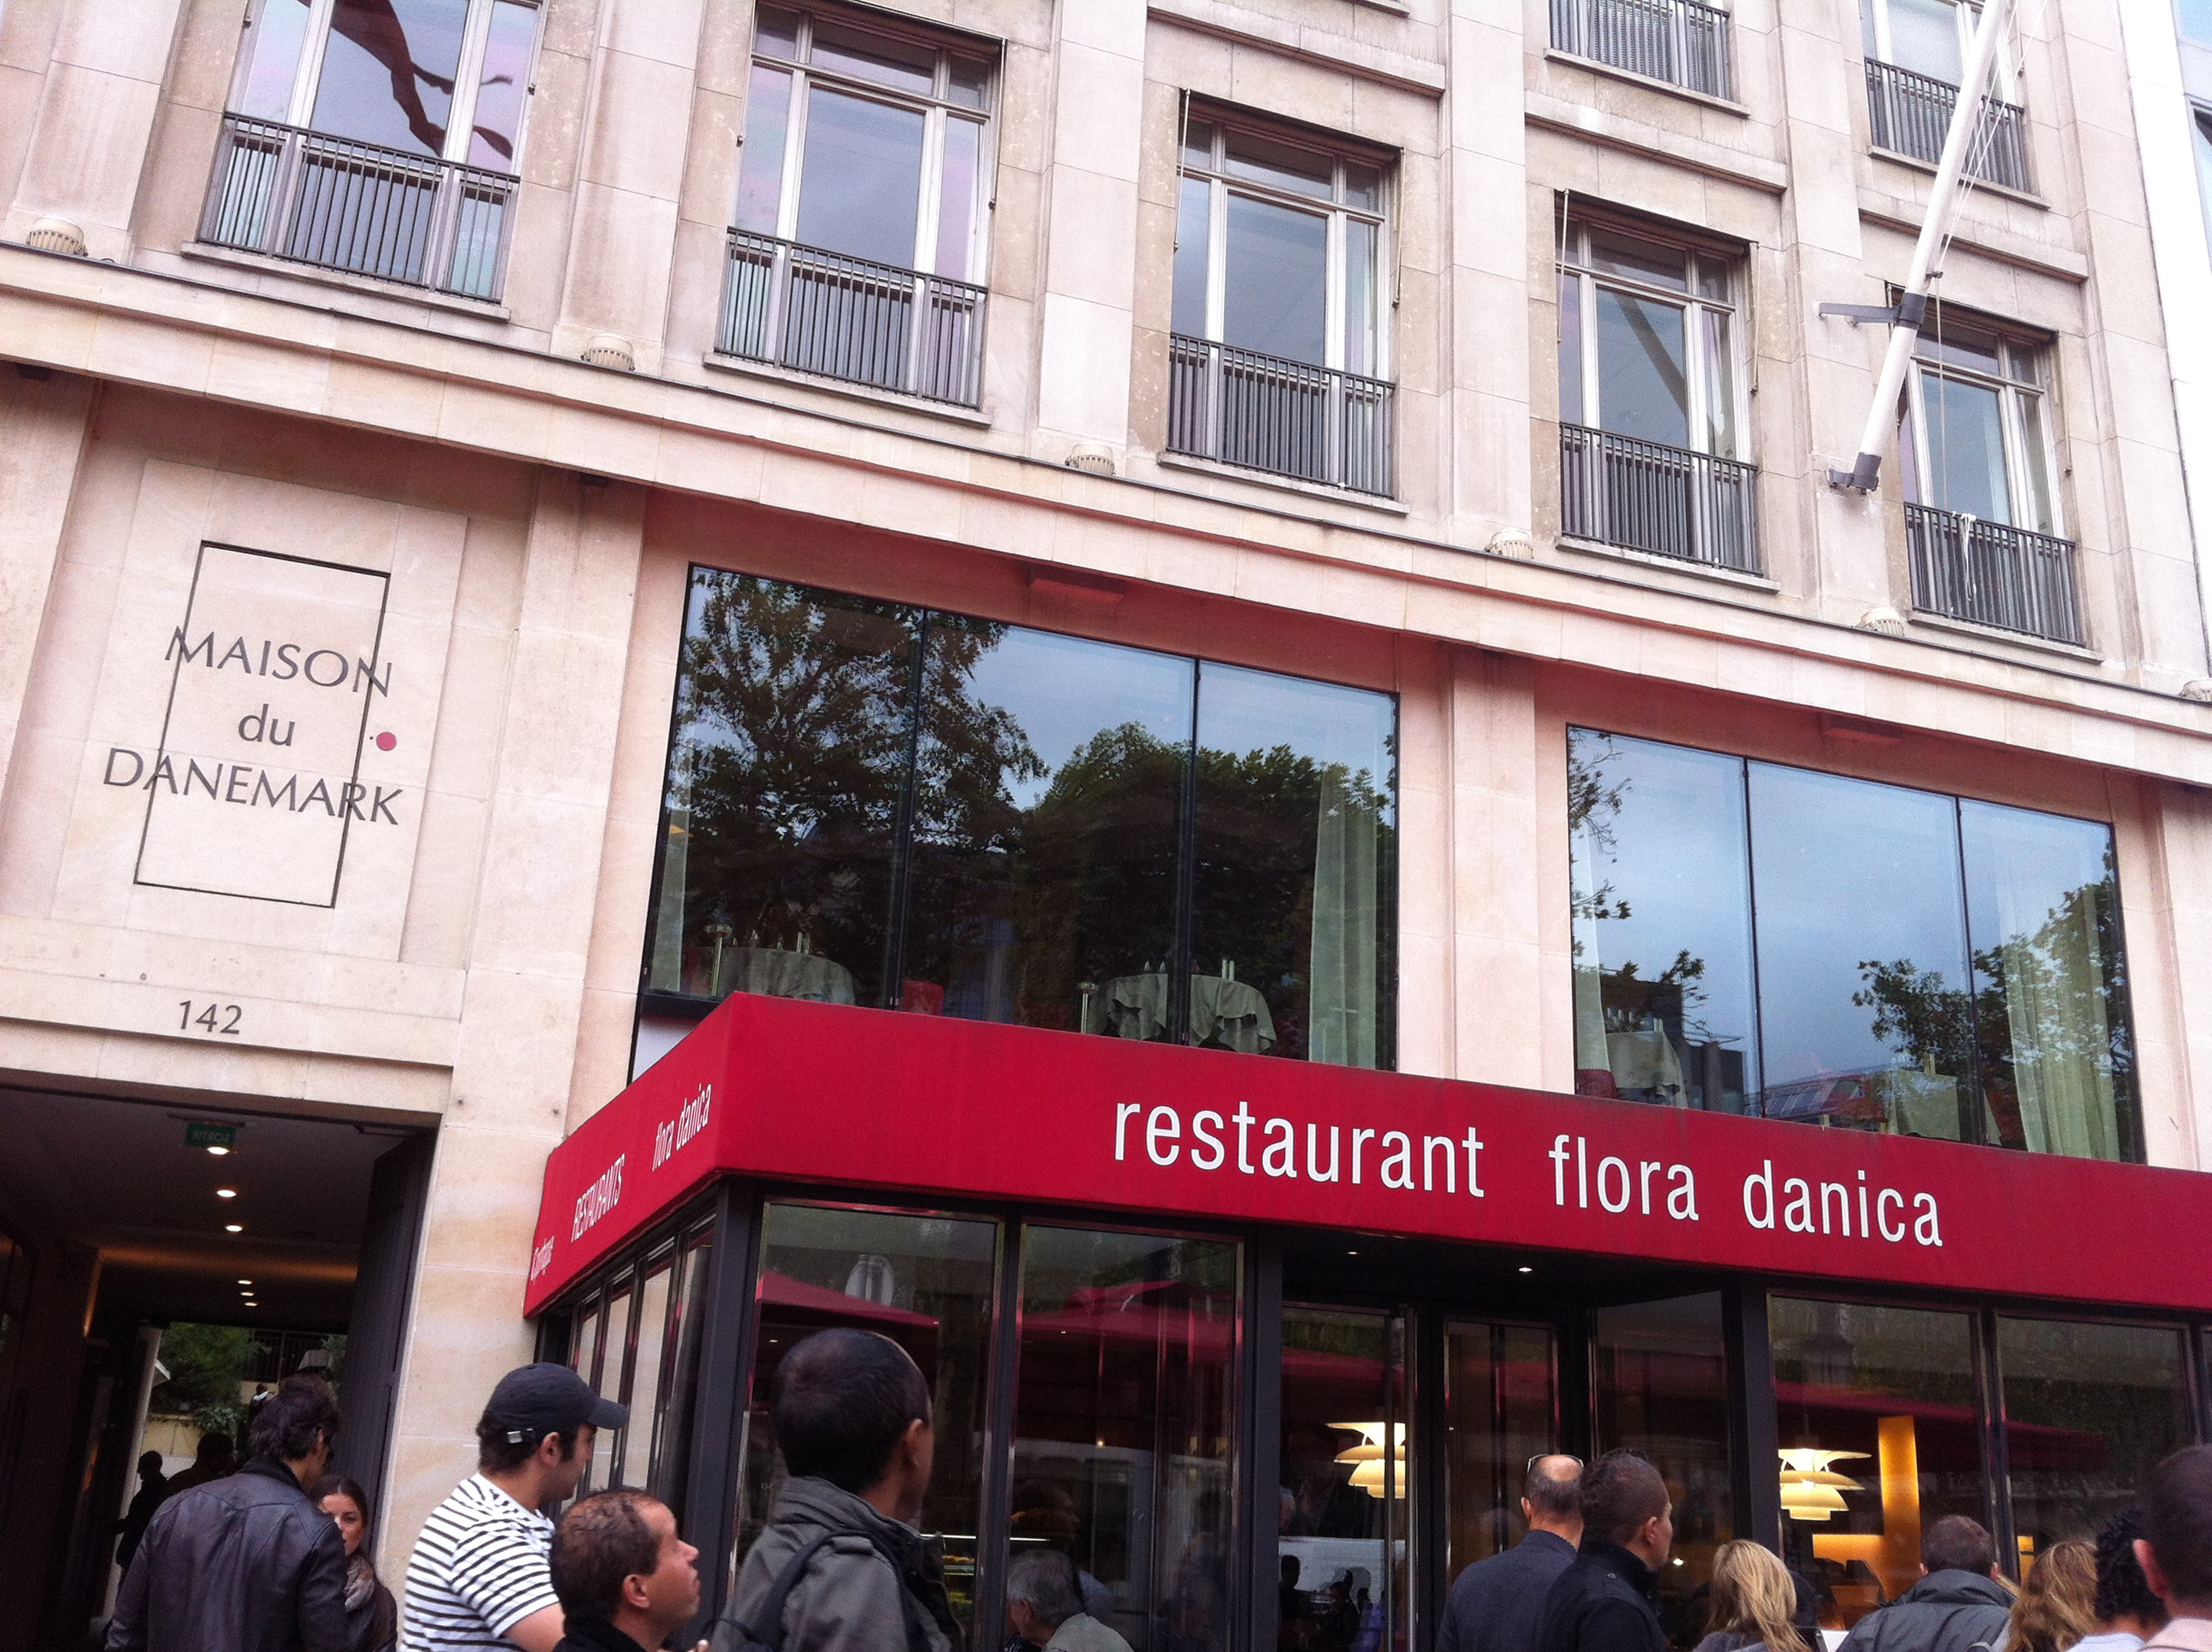 Le flora danica le restaurant aux accents danois for La maison du placard paris